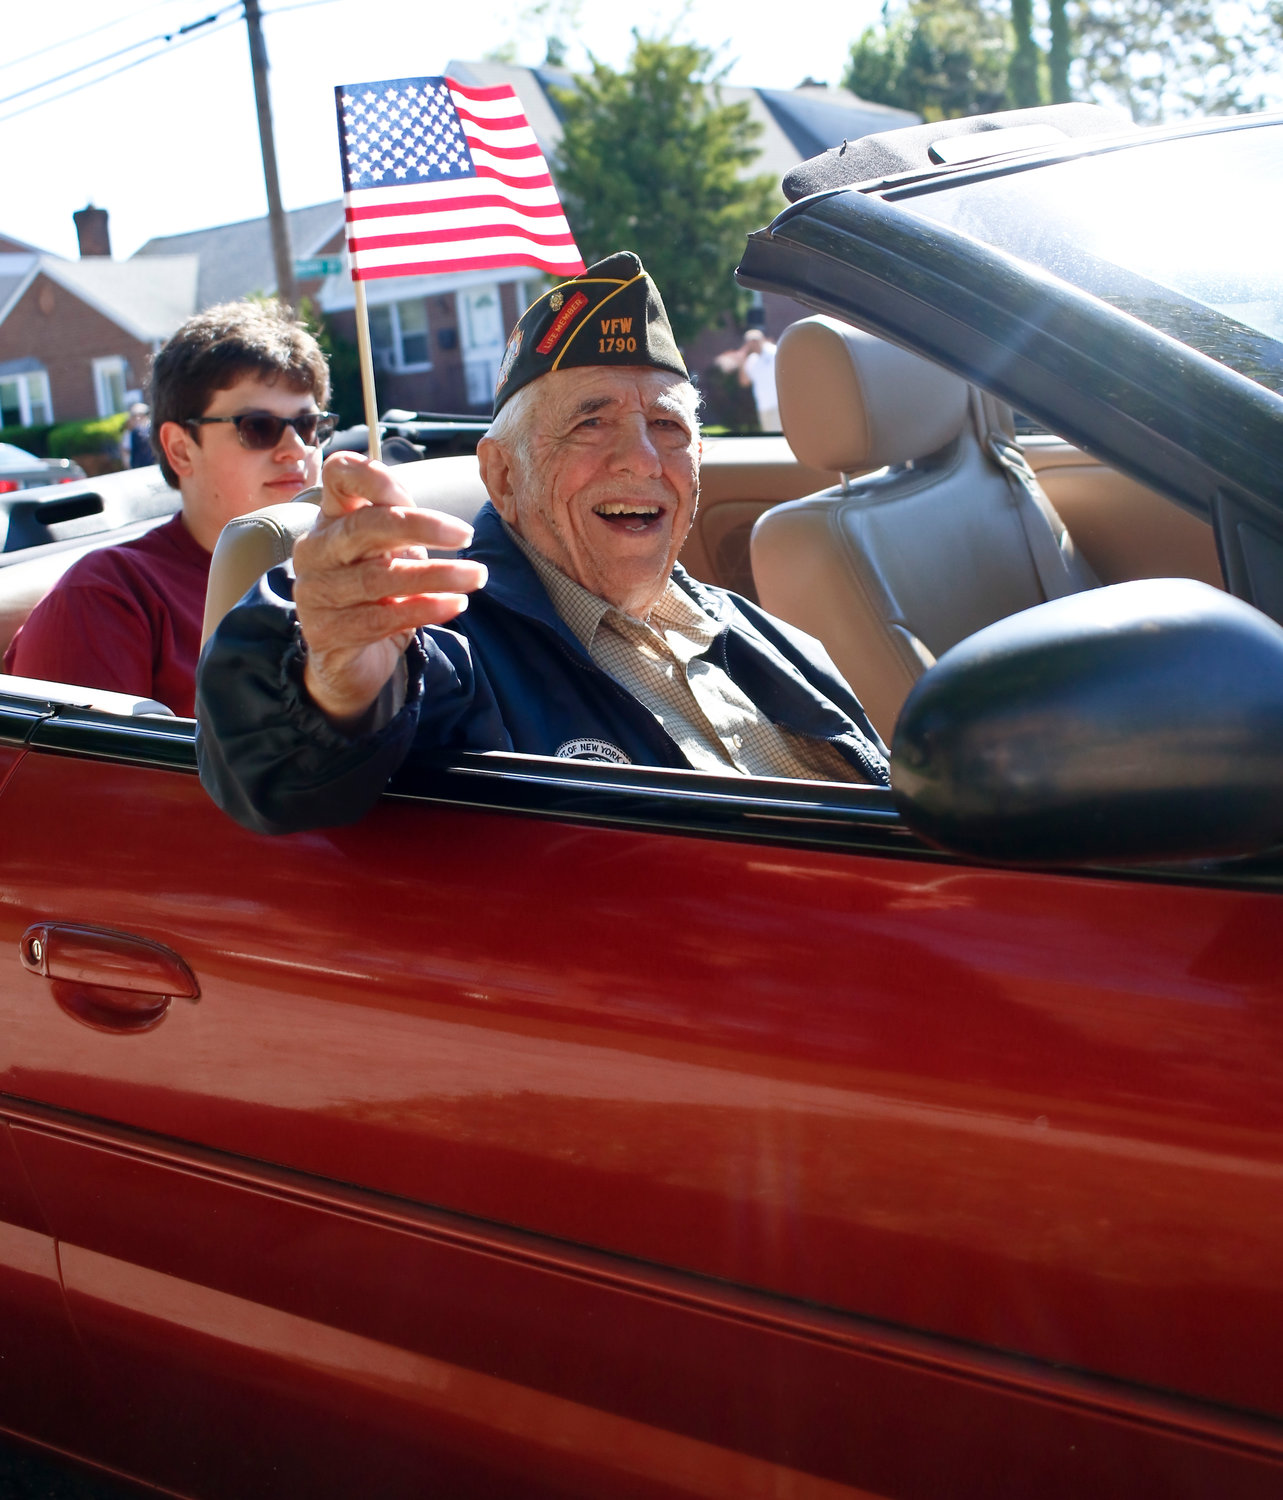 Palermo at the 2019 Memorial Day Parade. At 93, he is still active in the neighborhood.